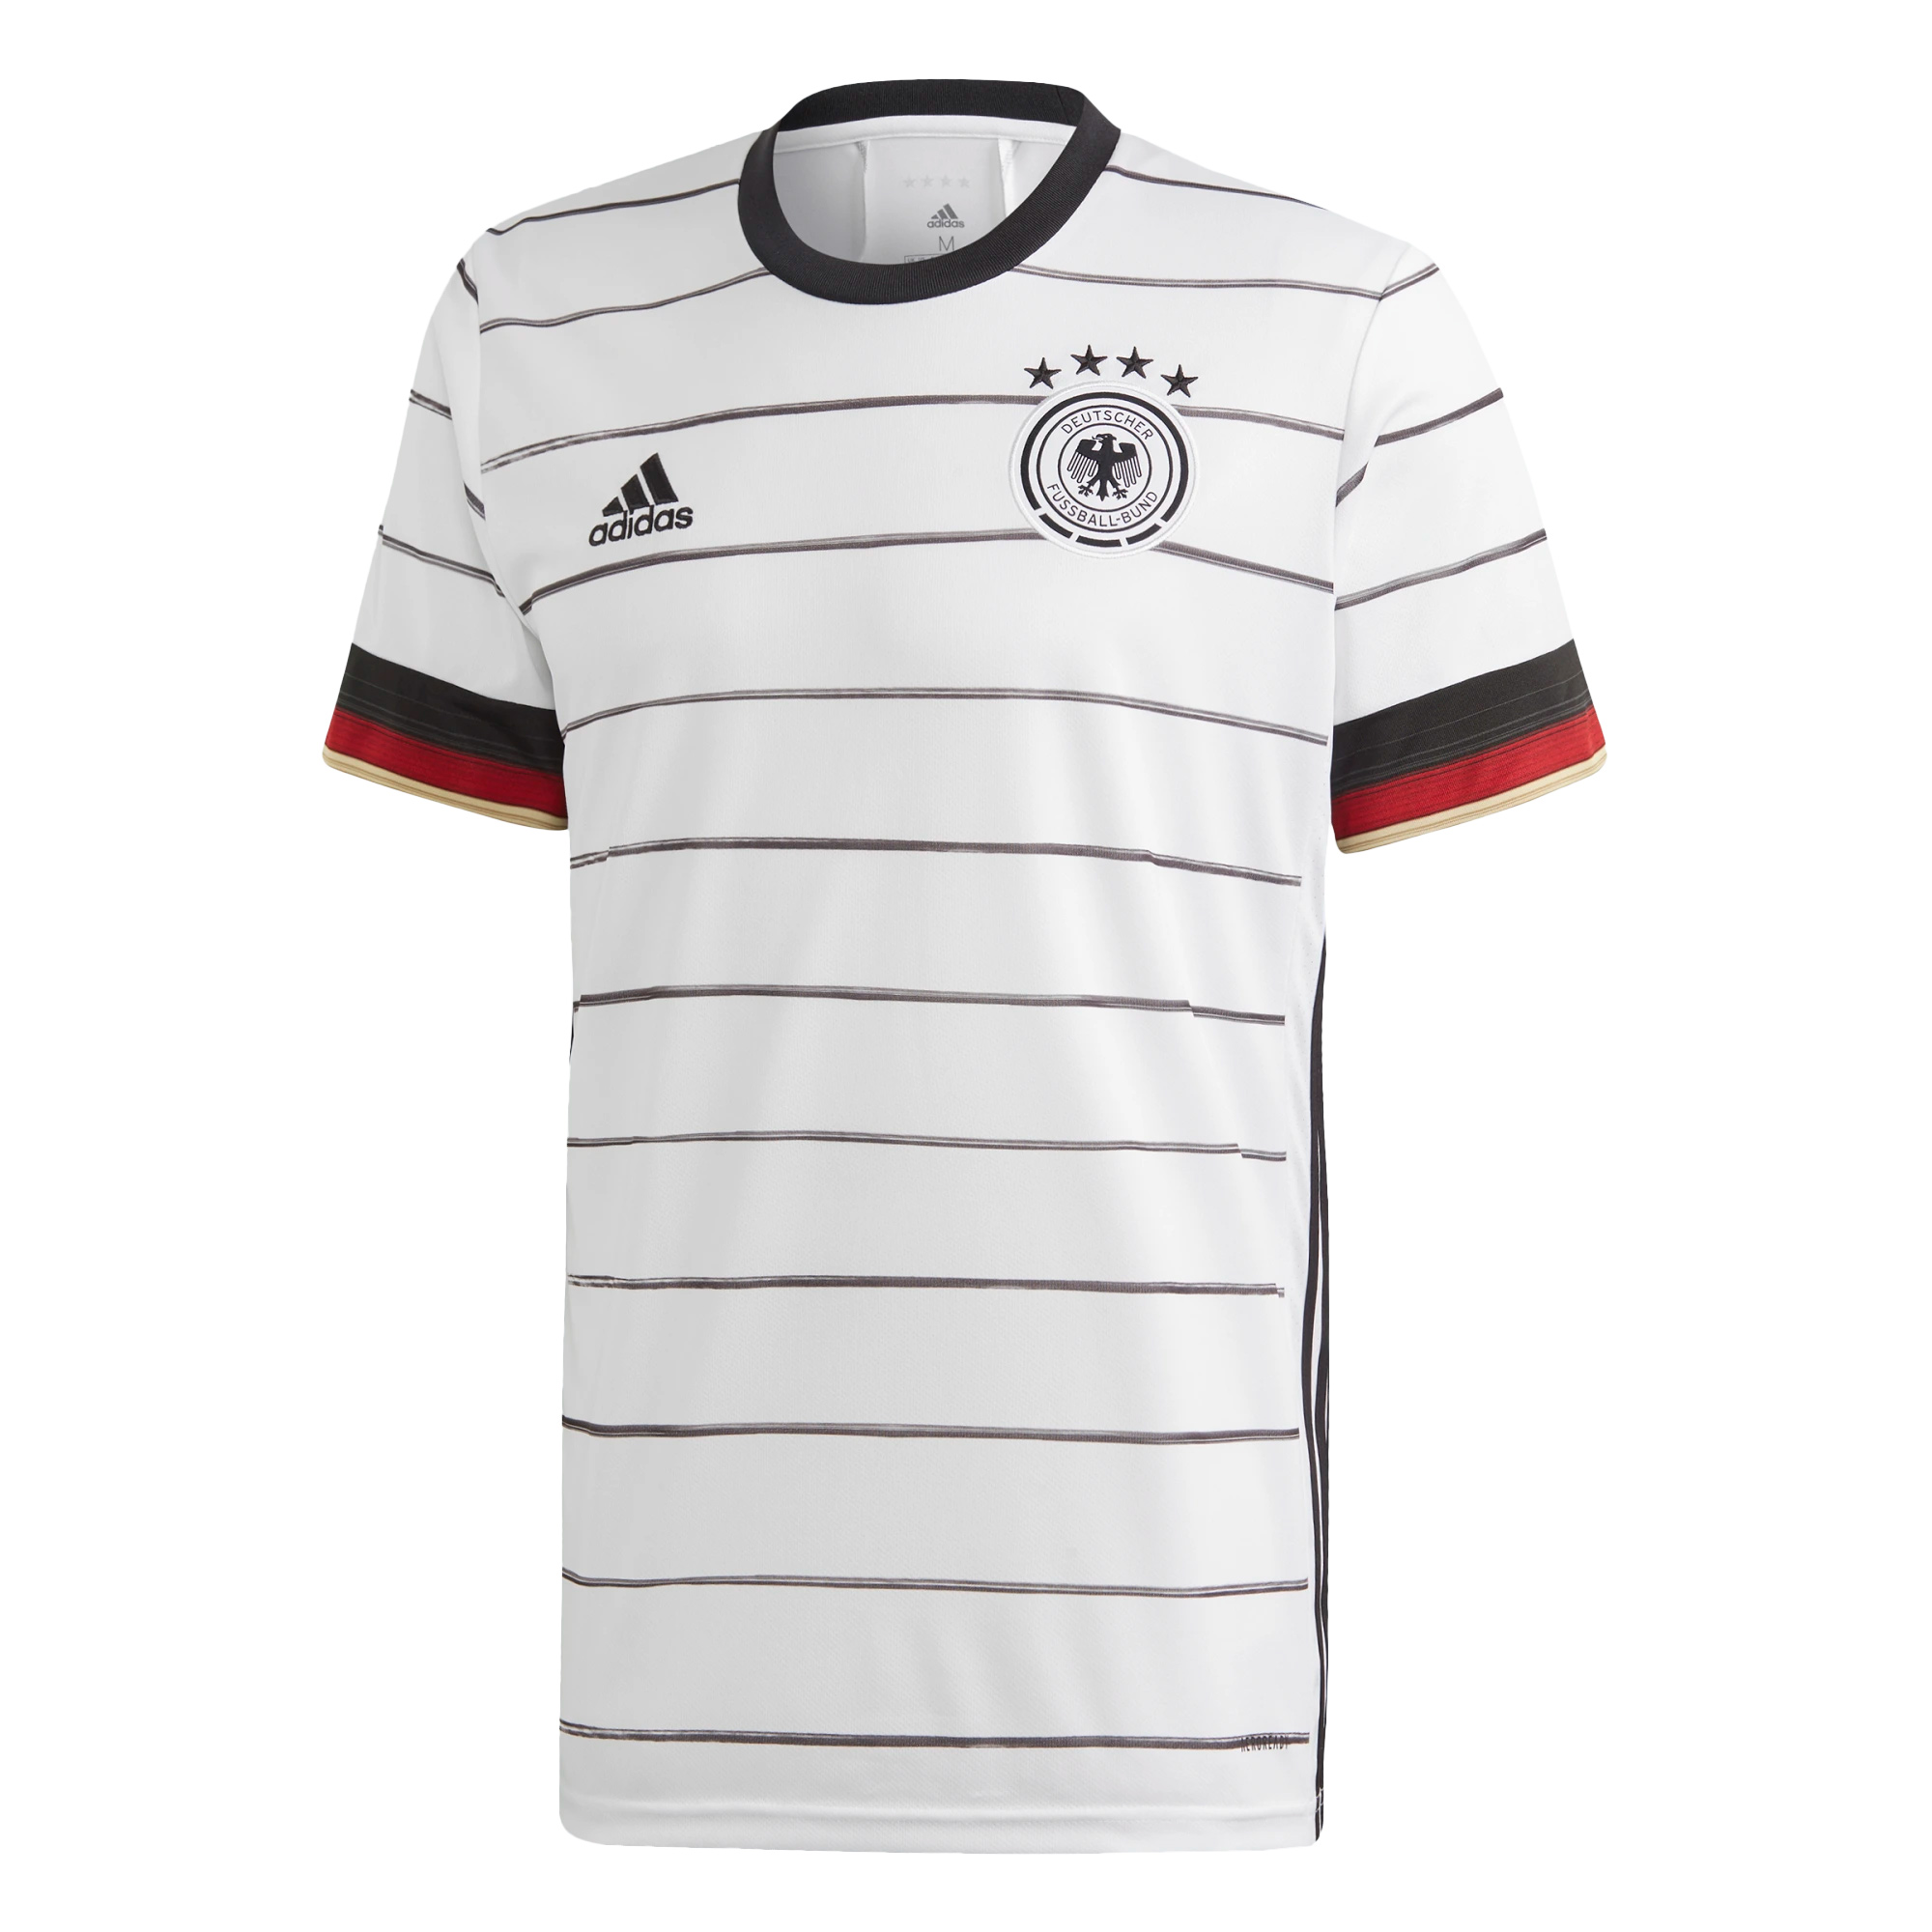 adidas DFB Authentic Trikot Home EM 2020 Herren weiß